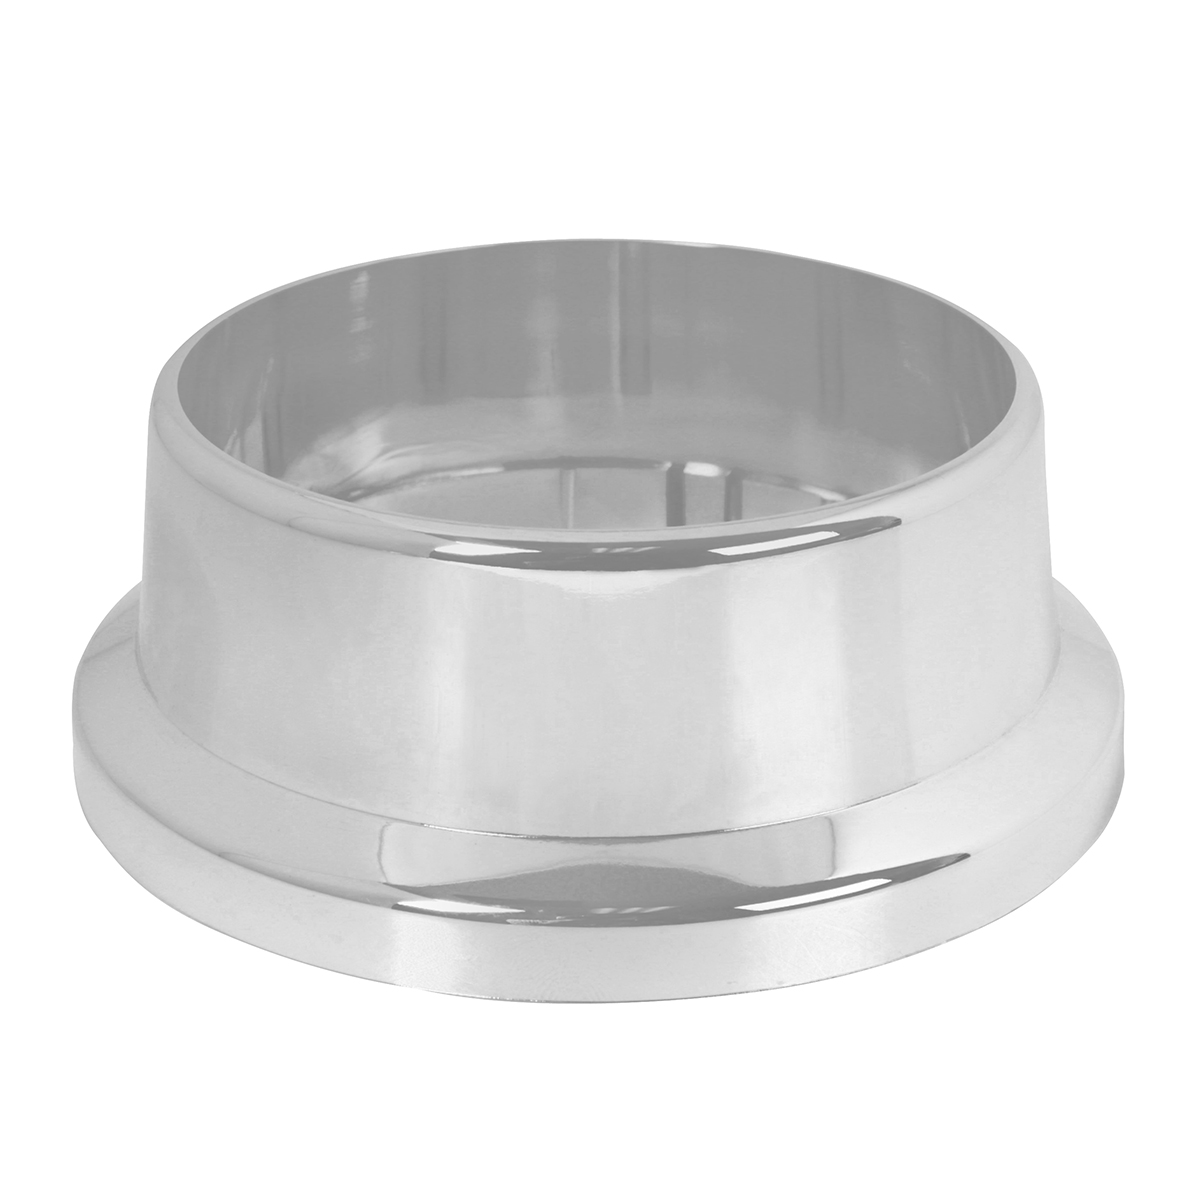 54020 Chrome Plastic Steering Wheel Collar Cover